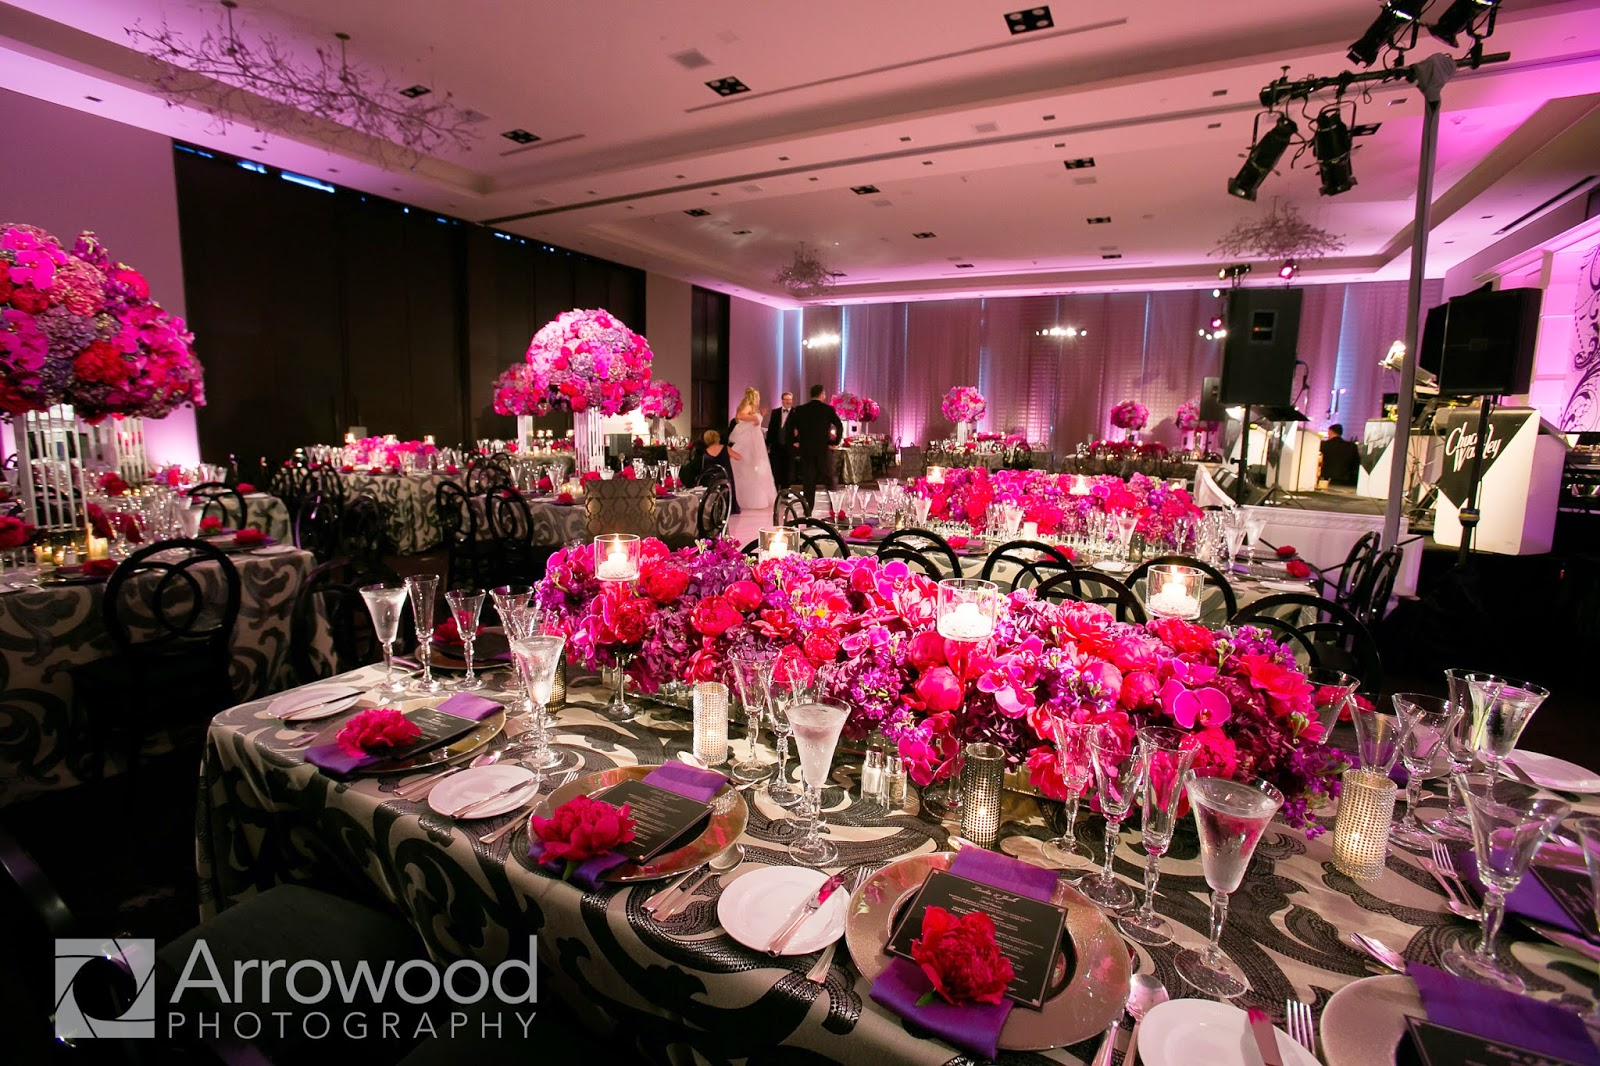 Michael Daigian Design: Real Weddings: St. Regis Hotel